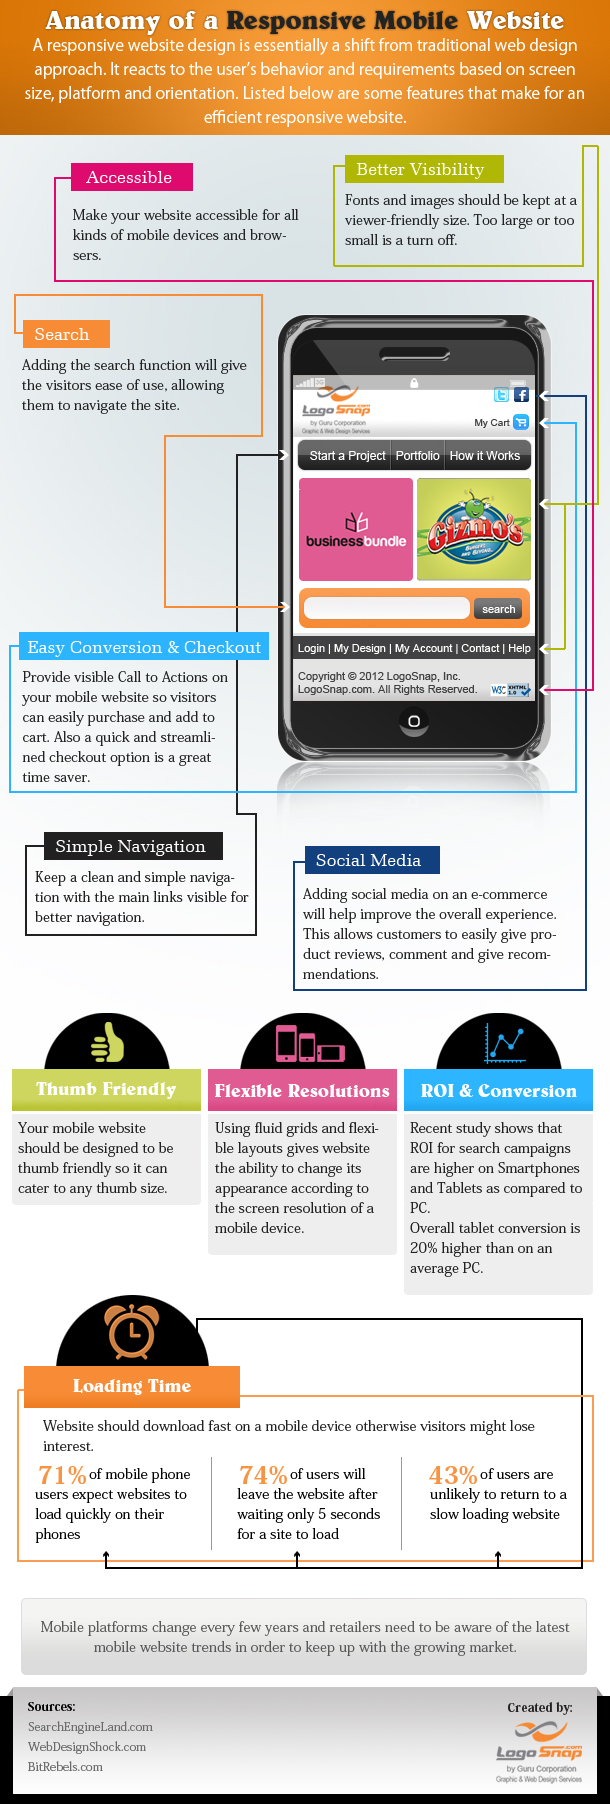 Anatomy of a Responsive Mobile Website